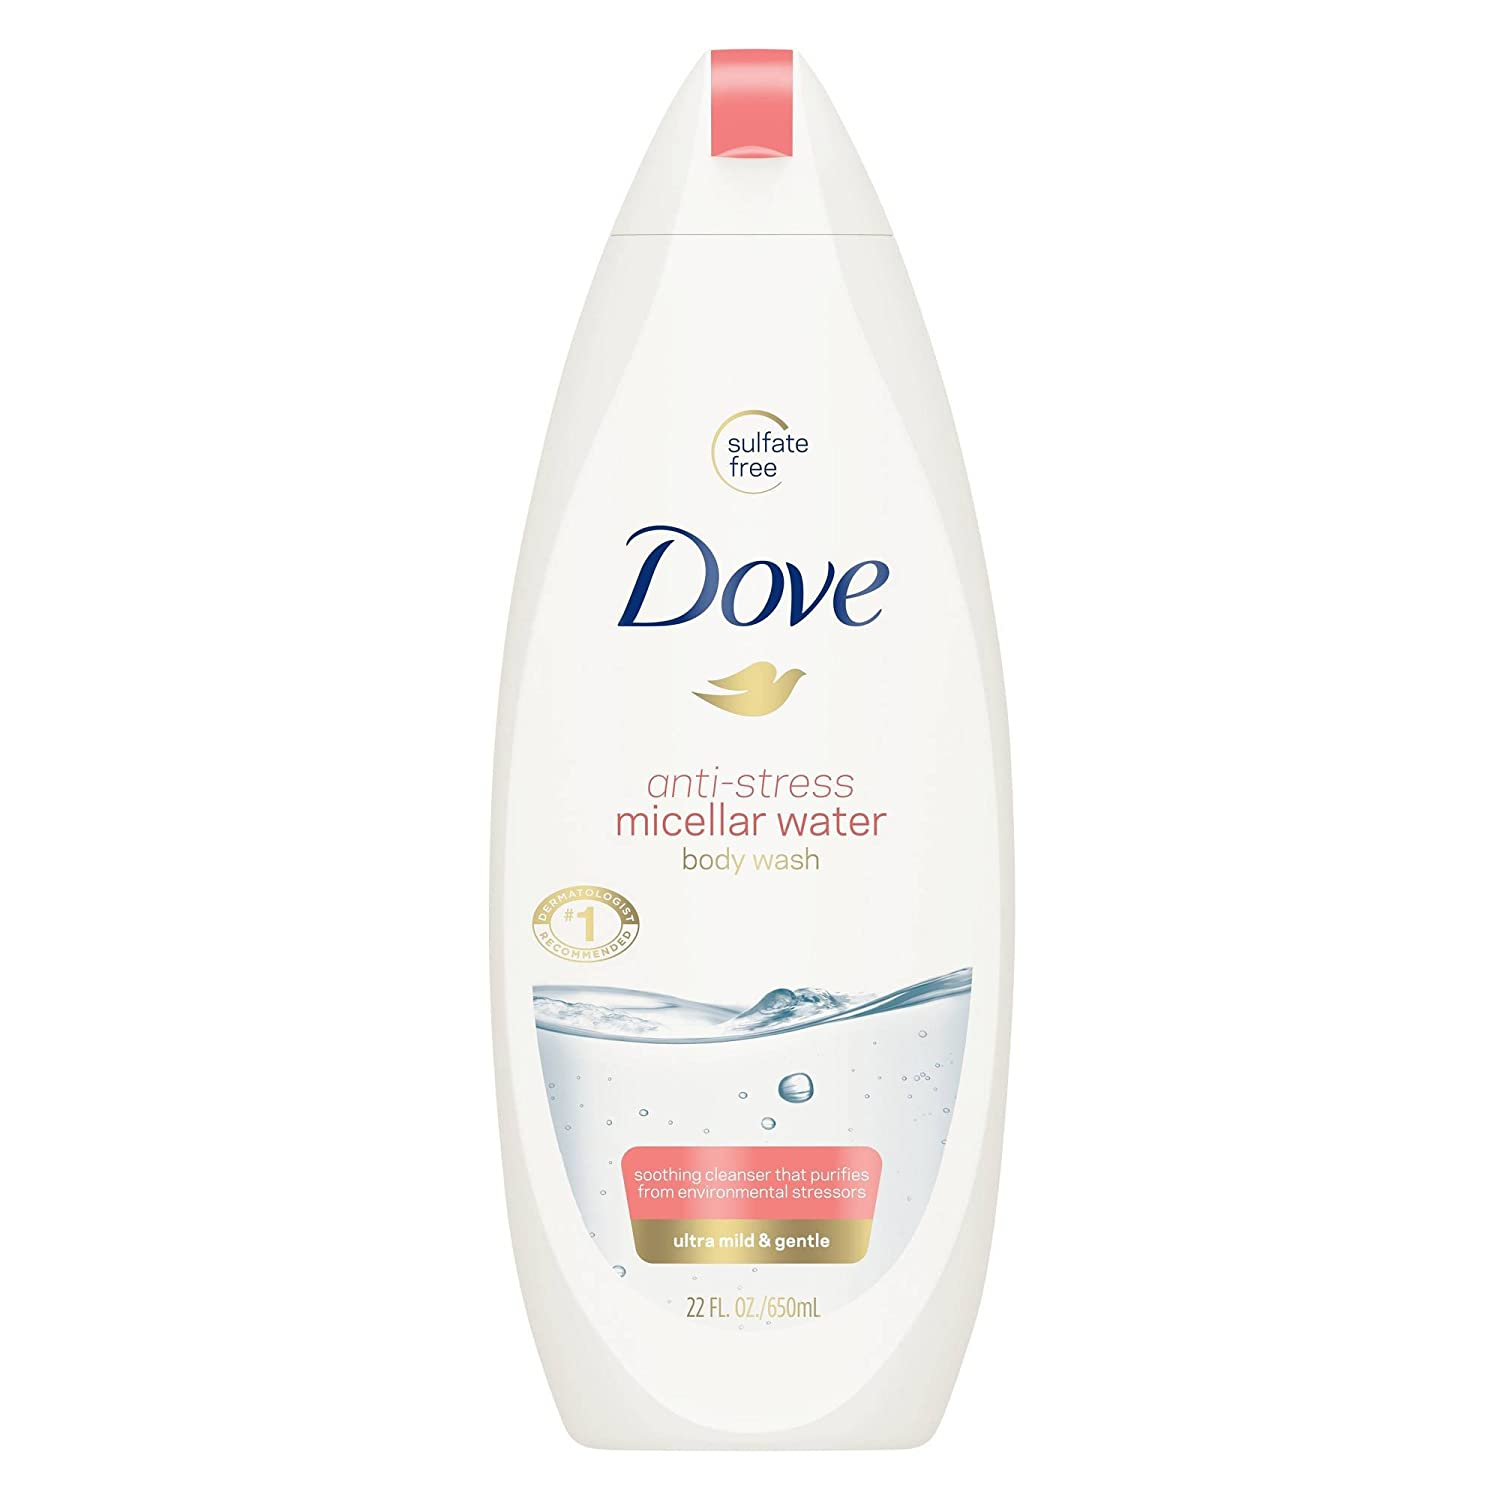 Dove Body Wash Micellar Water 22oz, pack of 1